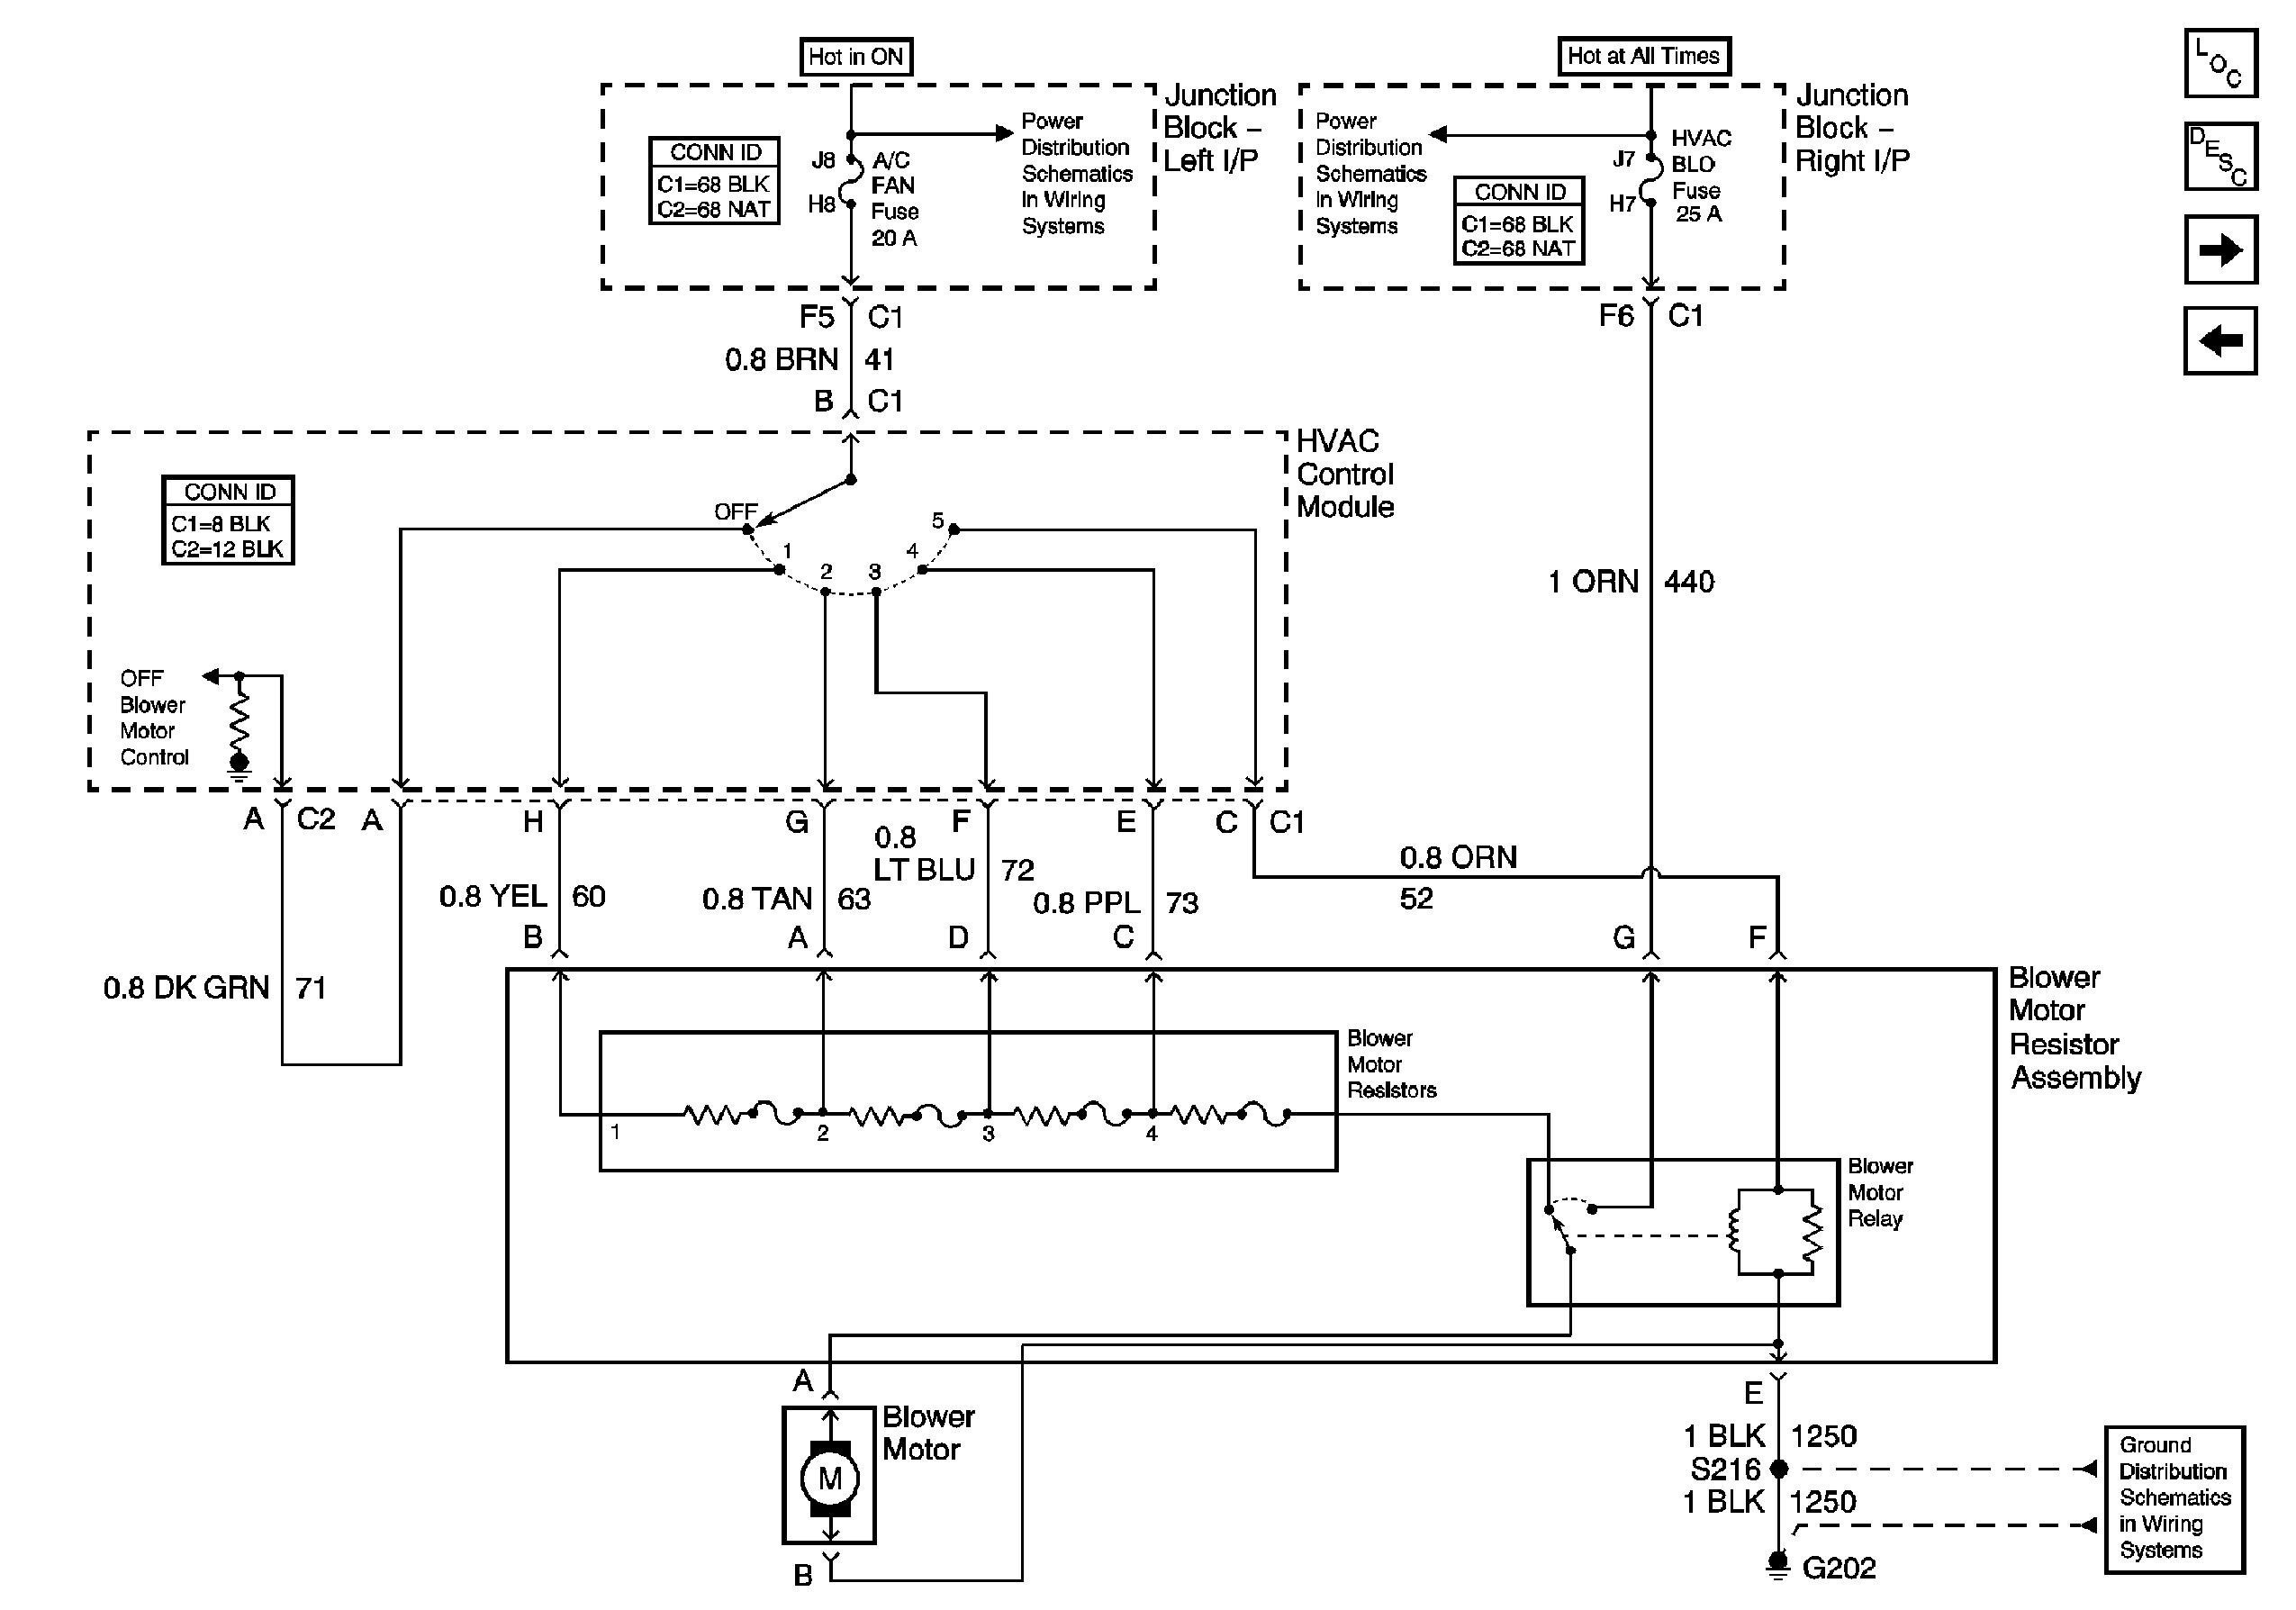 Wiring Diagram For All Fasco Motorsis Shown On The Motor ... on